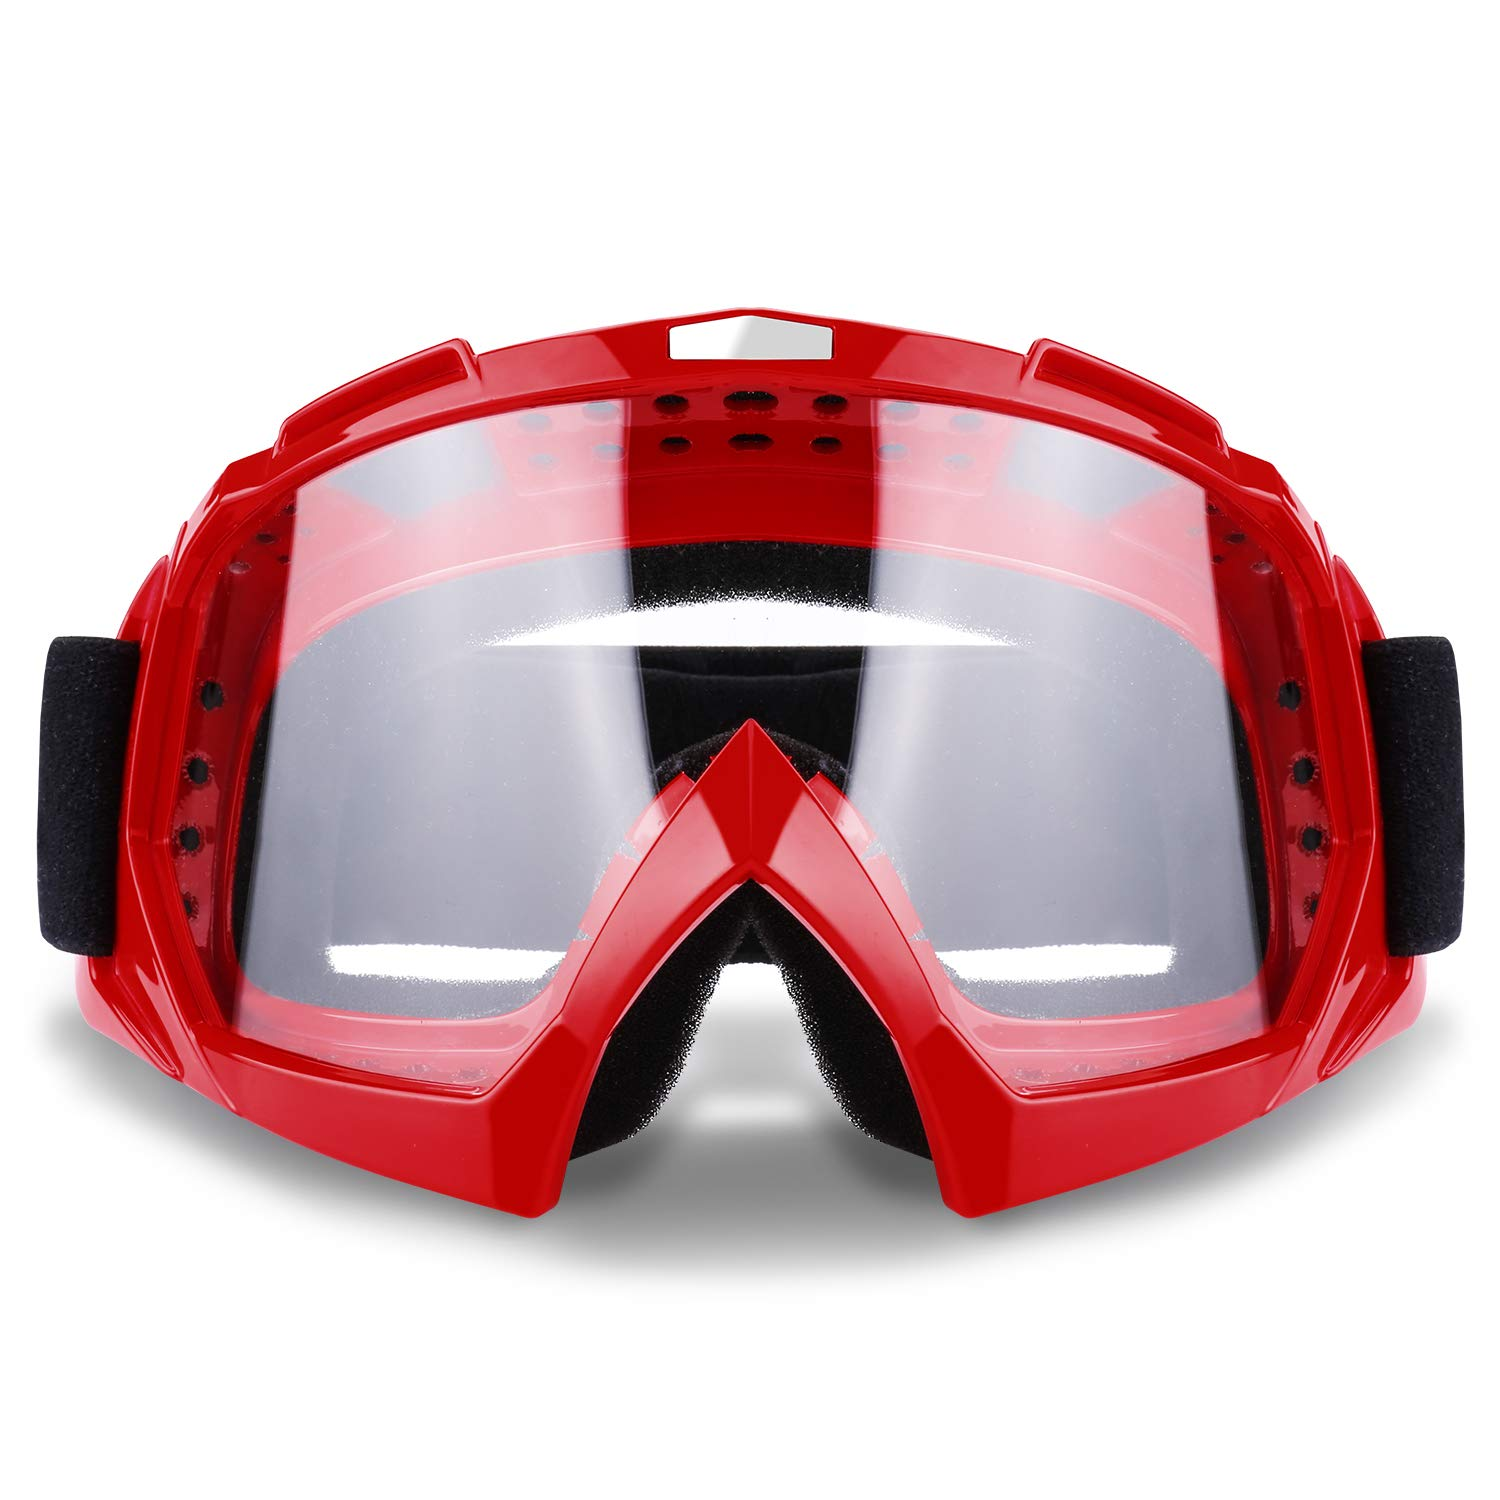 Motorcycle Goggles Anti UV Anti Fog Dustproof ATV Motocross Riding Glasses CarBoss